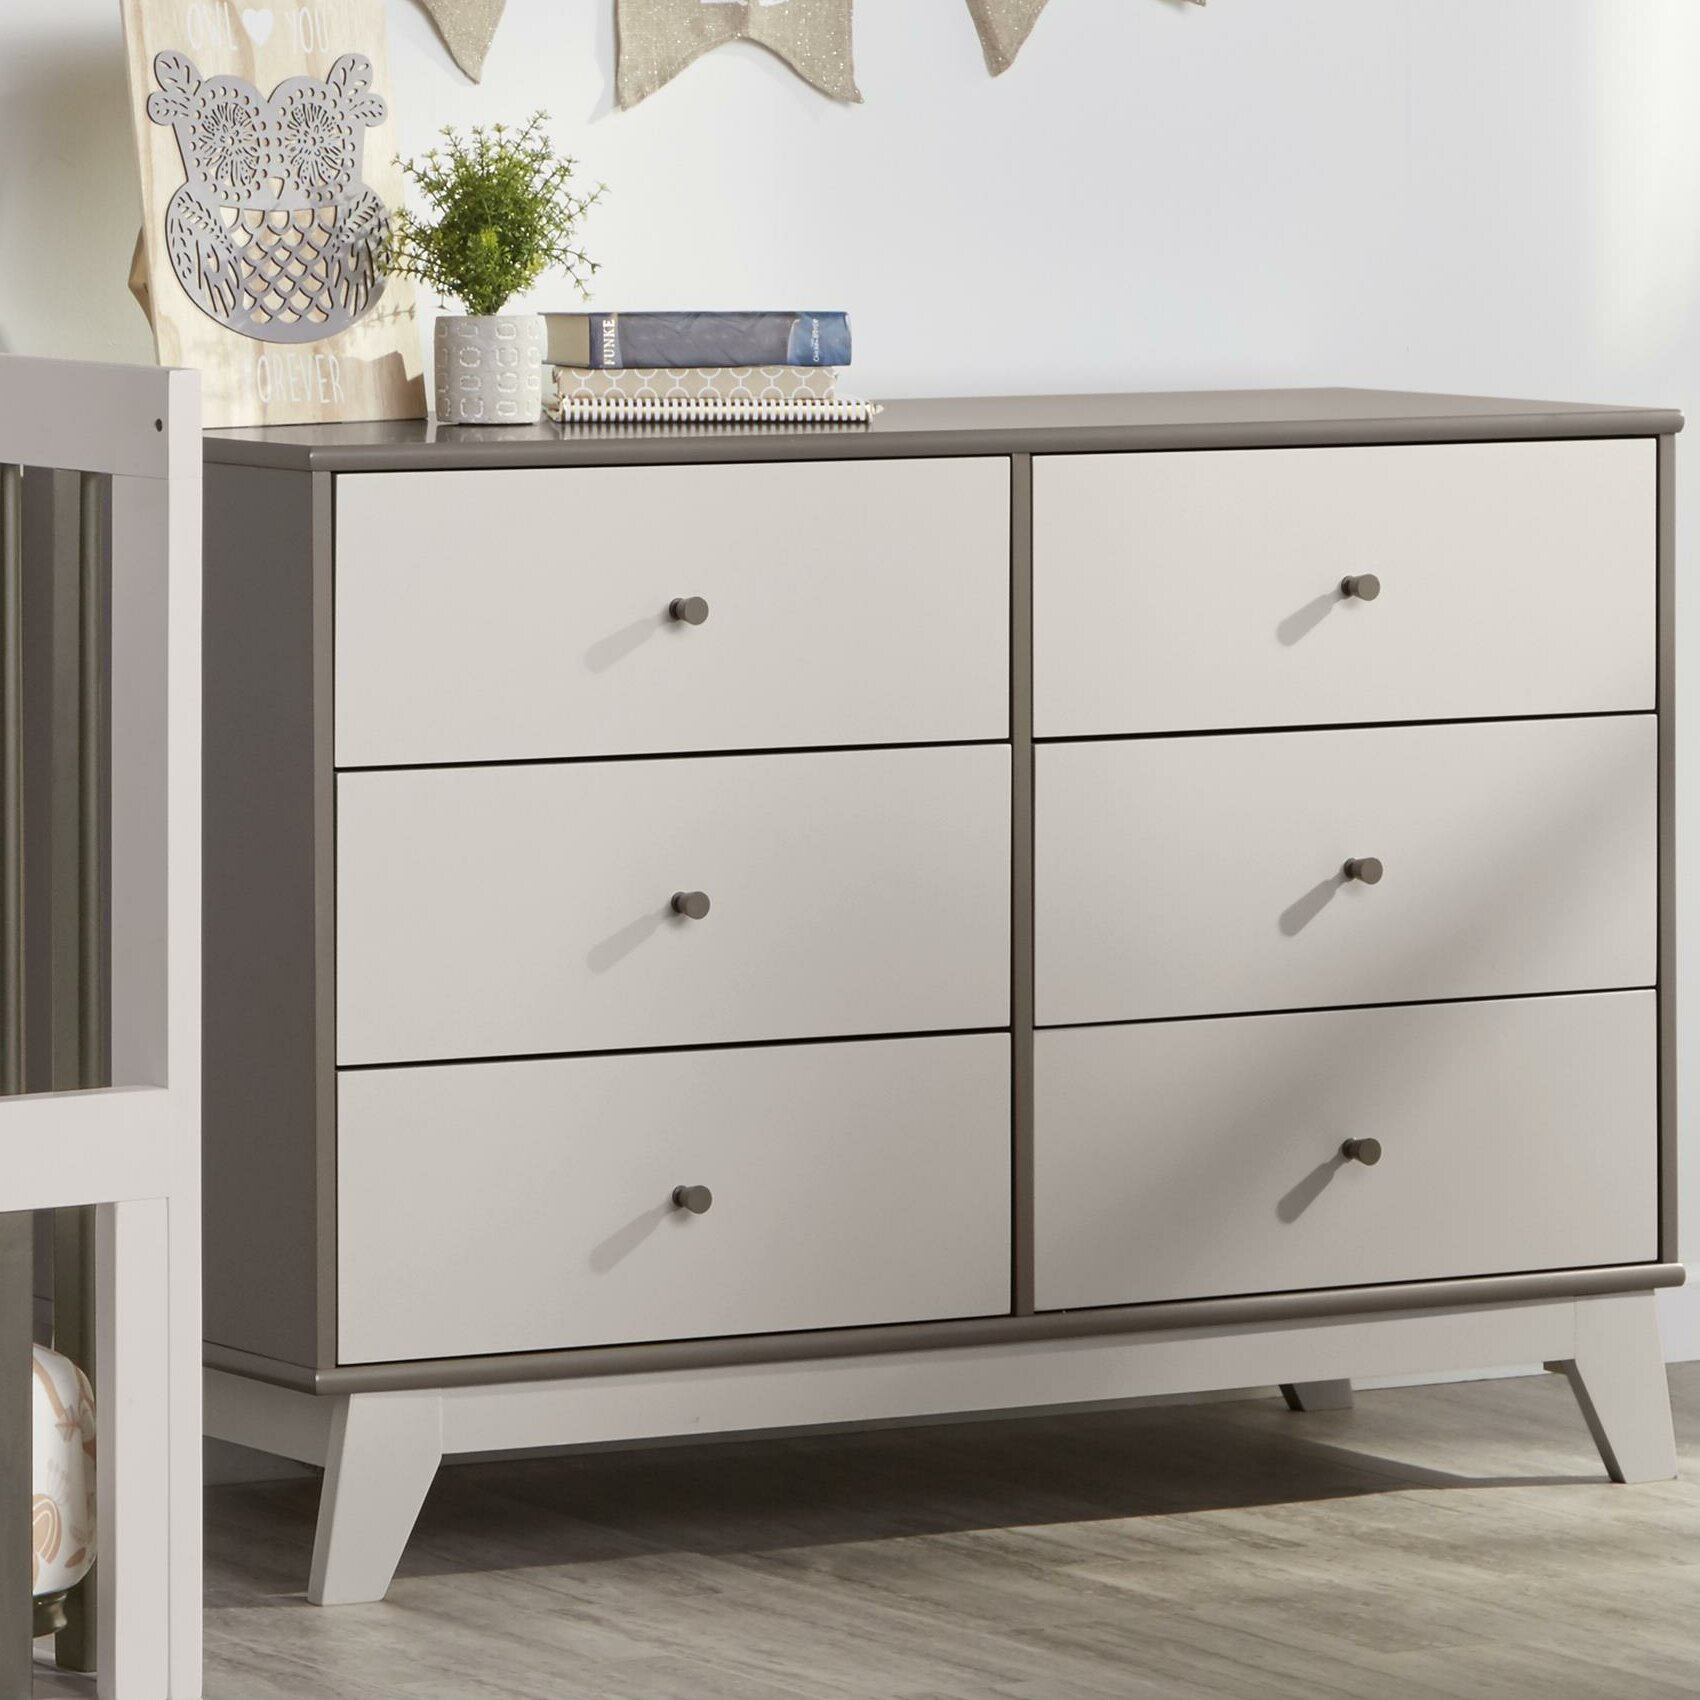 dressers summer gray dresser grove products traditional bedrooms